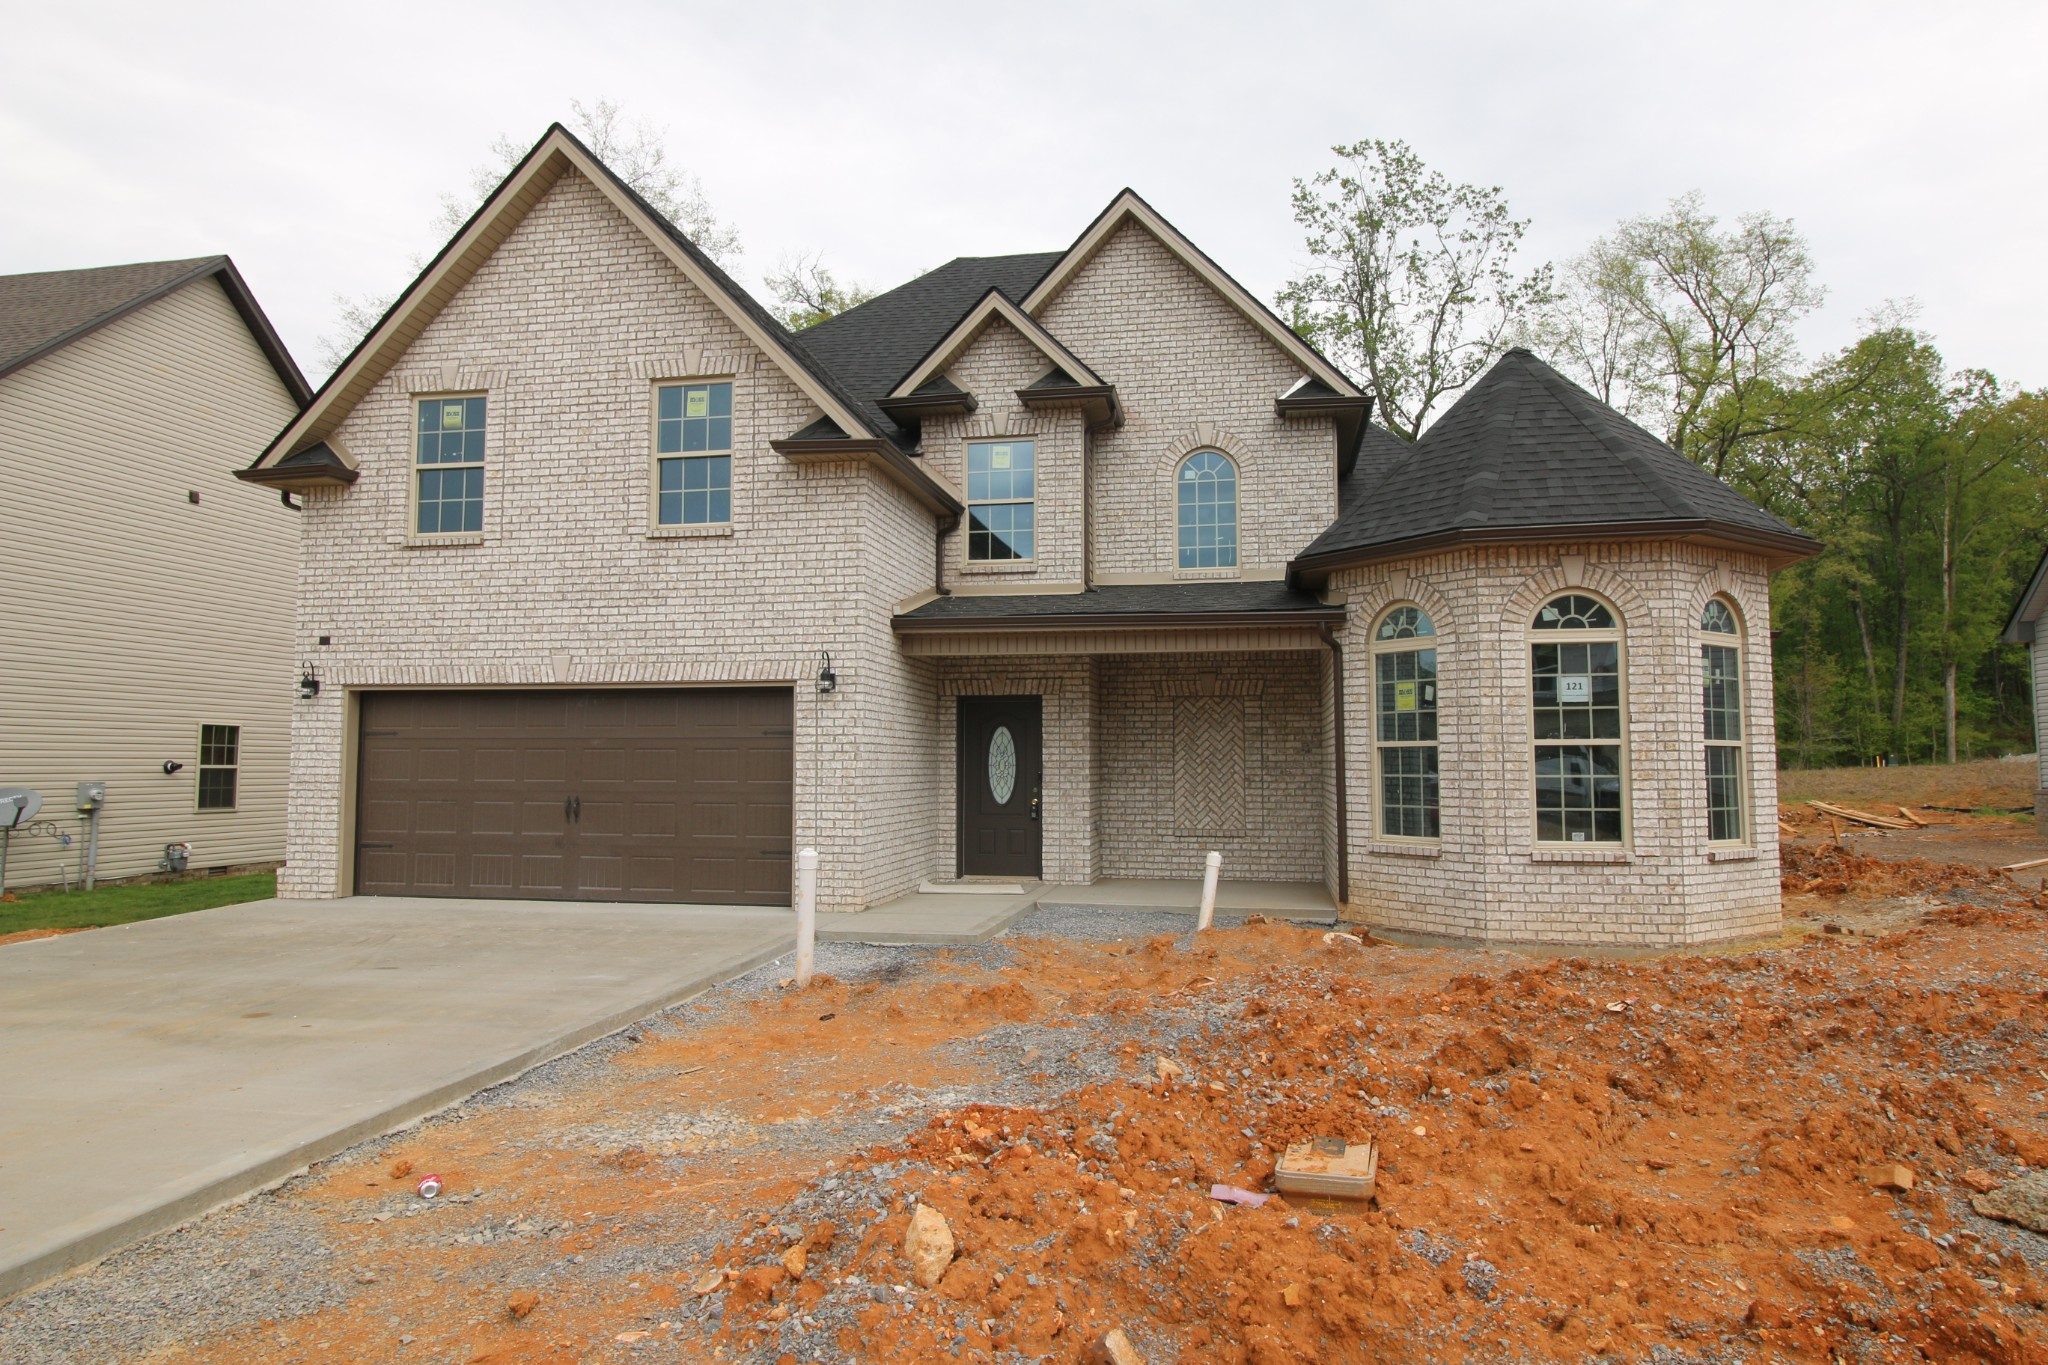 121 The Groves at Hearthstone, Clarksville, TN 37040 - Clarksville, TN real estate listing